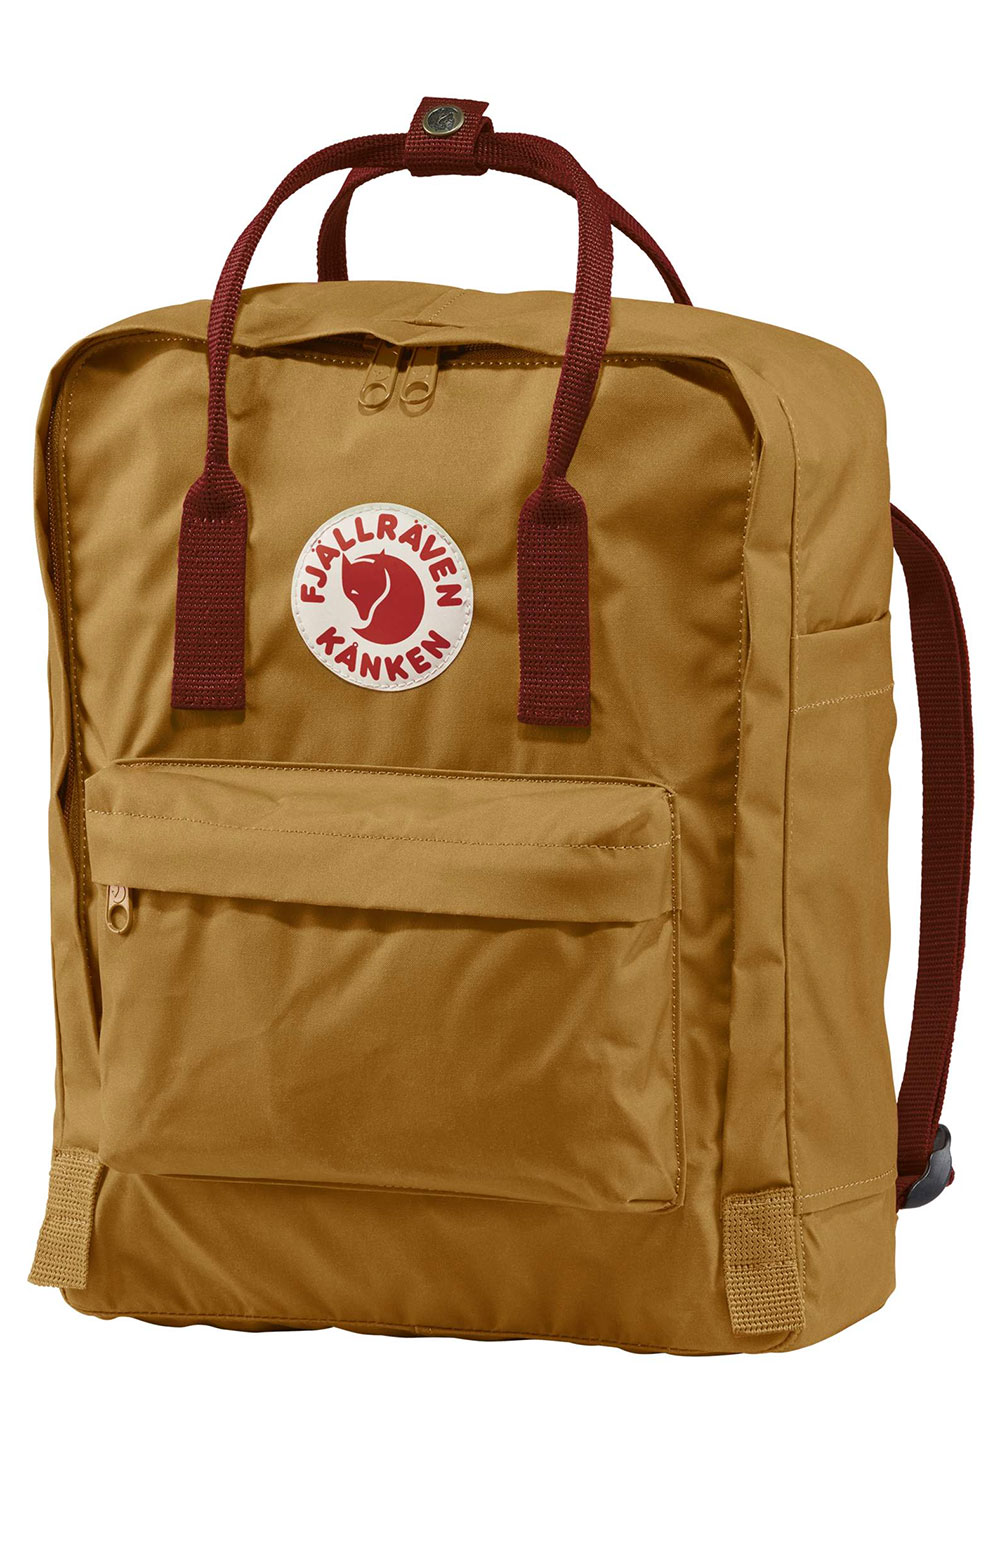 Kanken Backpack - Acorn/Ox Red 2